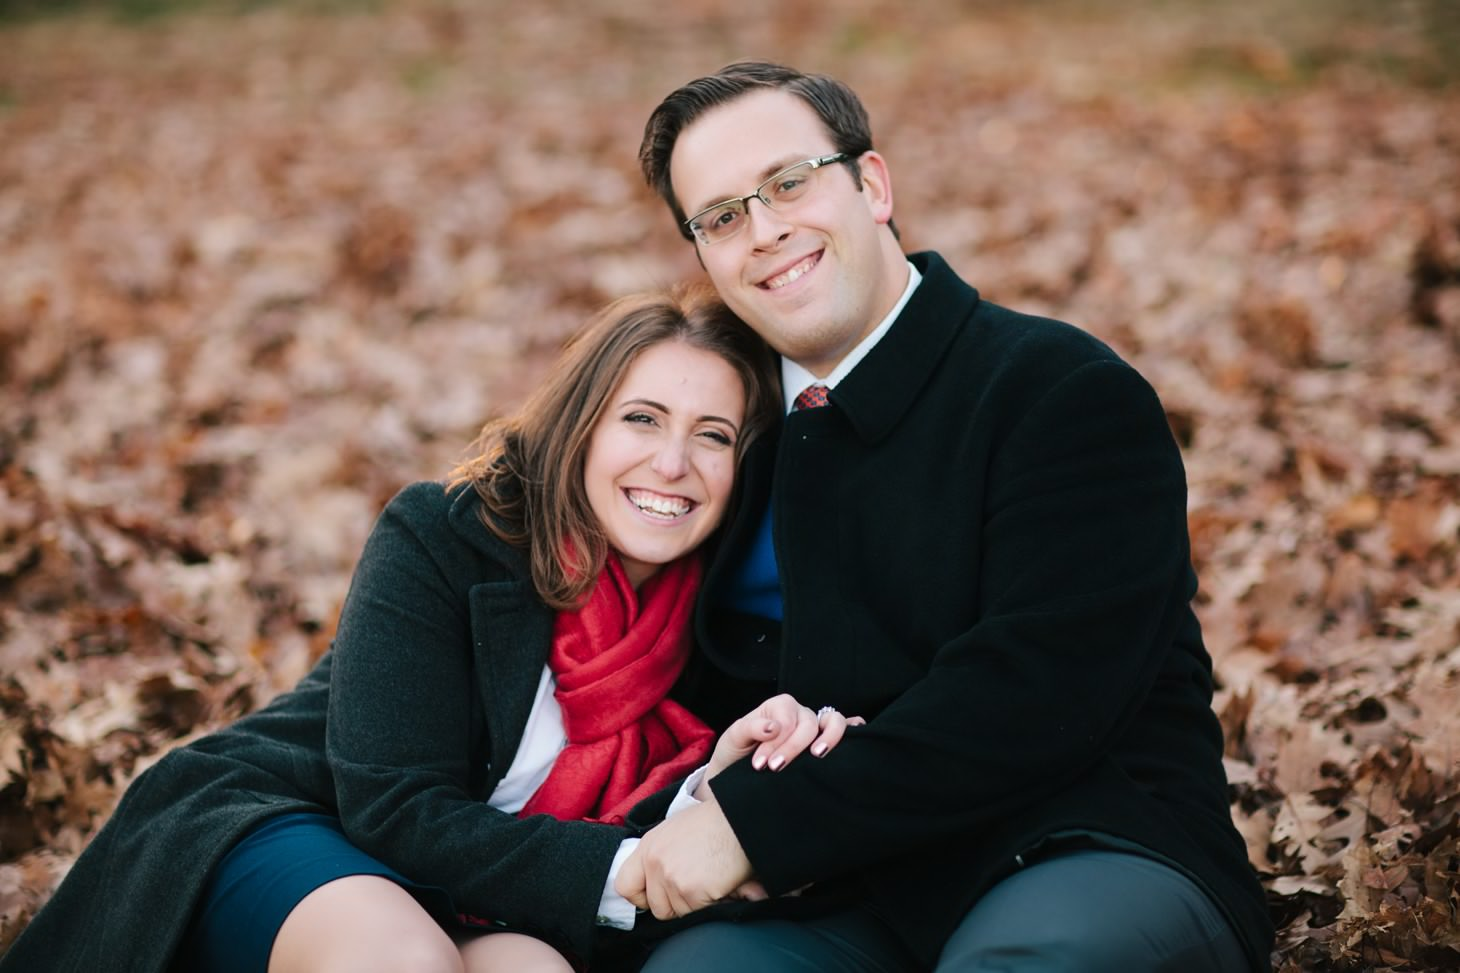 009-nyc-wedding-portrait-photographer-engagement-photos-cloisters-fall-leaves-smitten-chickens.jpg